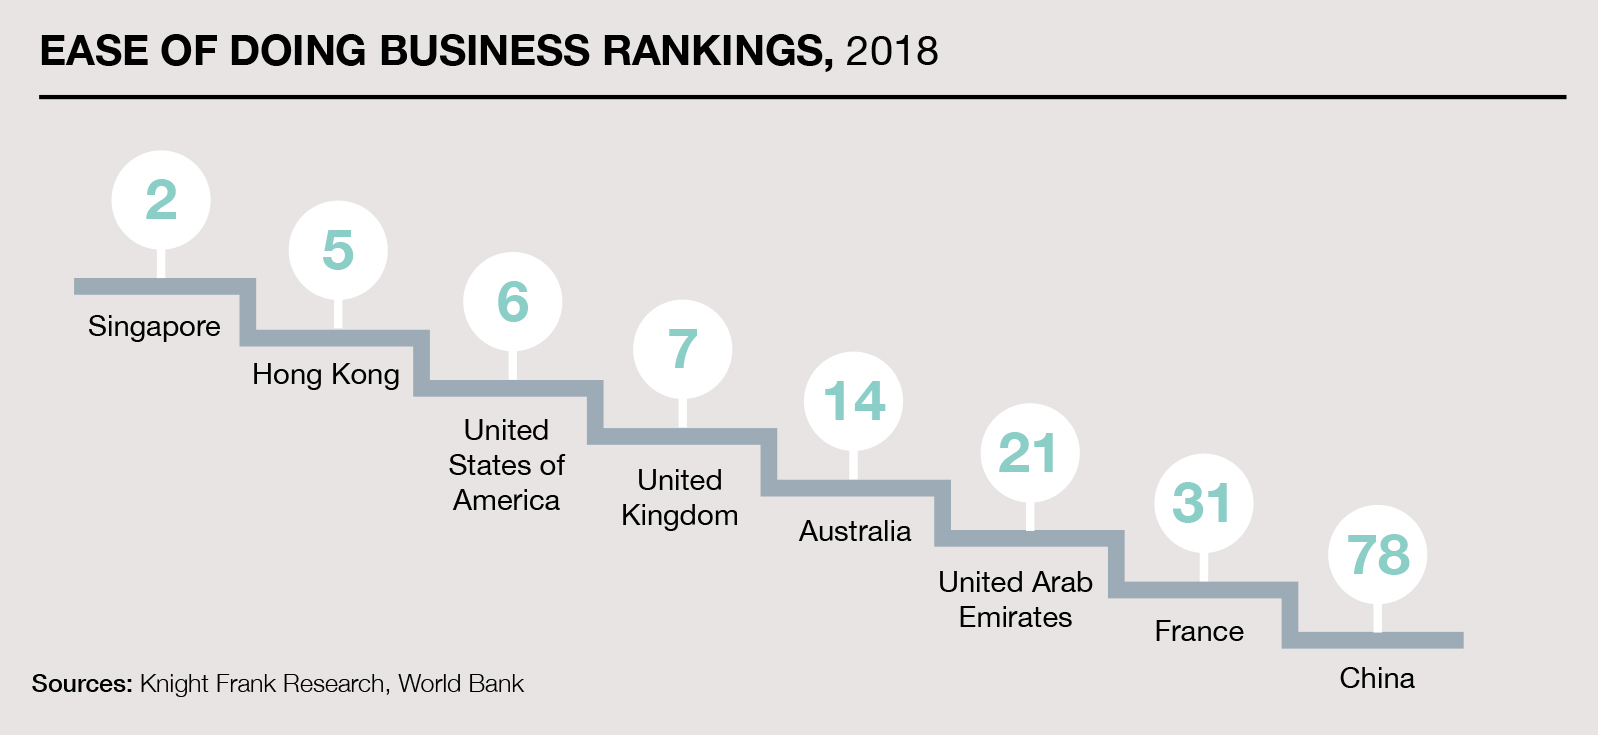 Ease of doing business index (1=most business-friendly regulations)